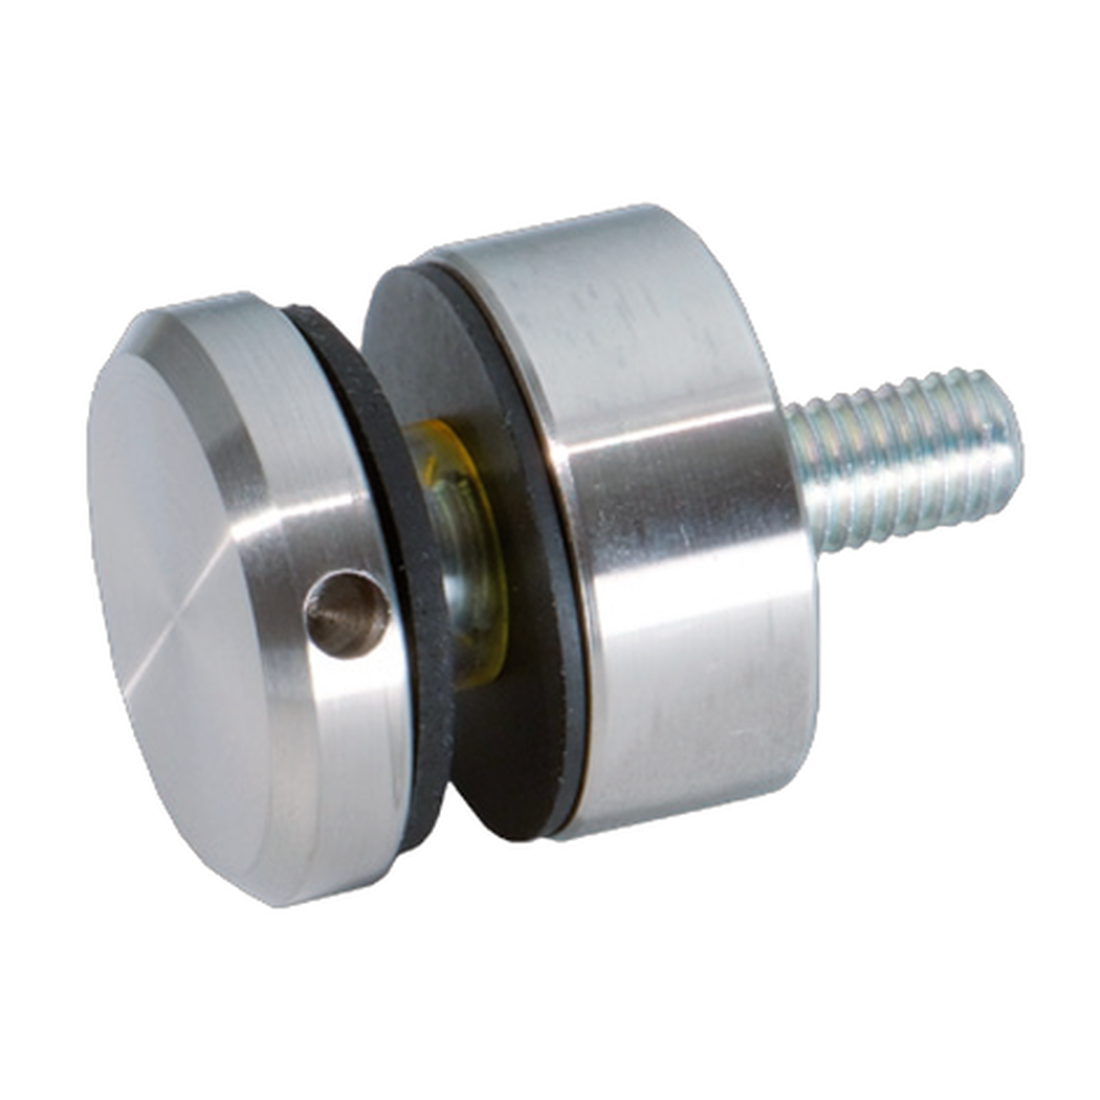 DISTANCE HOLDER WITH TIGHTENING SCREW IN HOLE FOR SQUARE TUBE